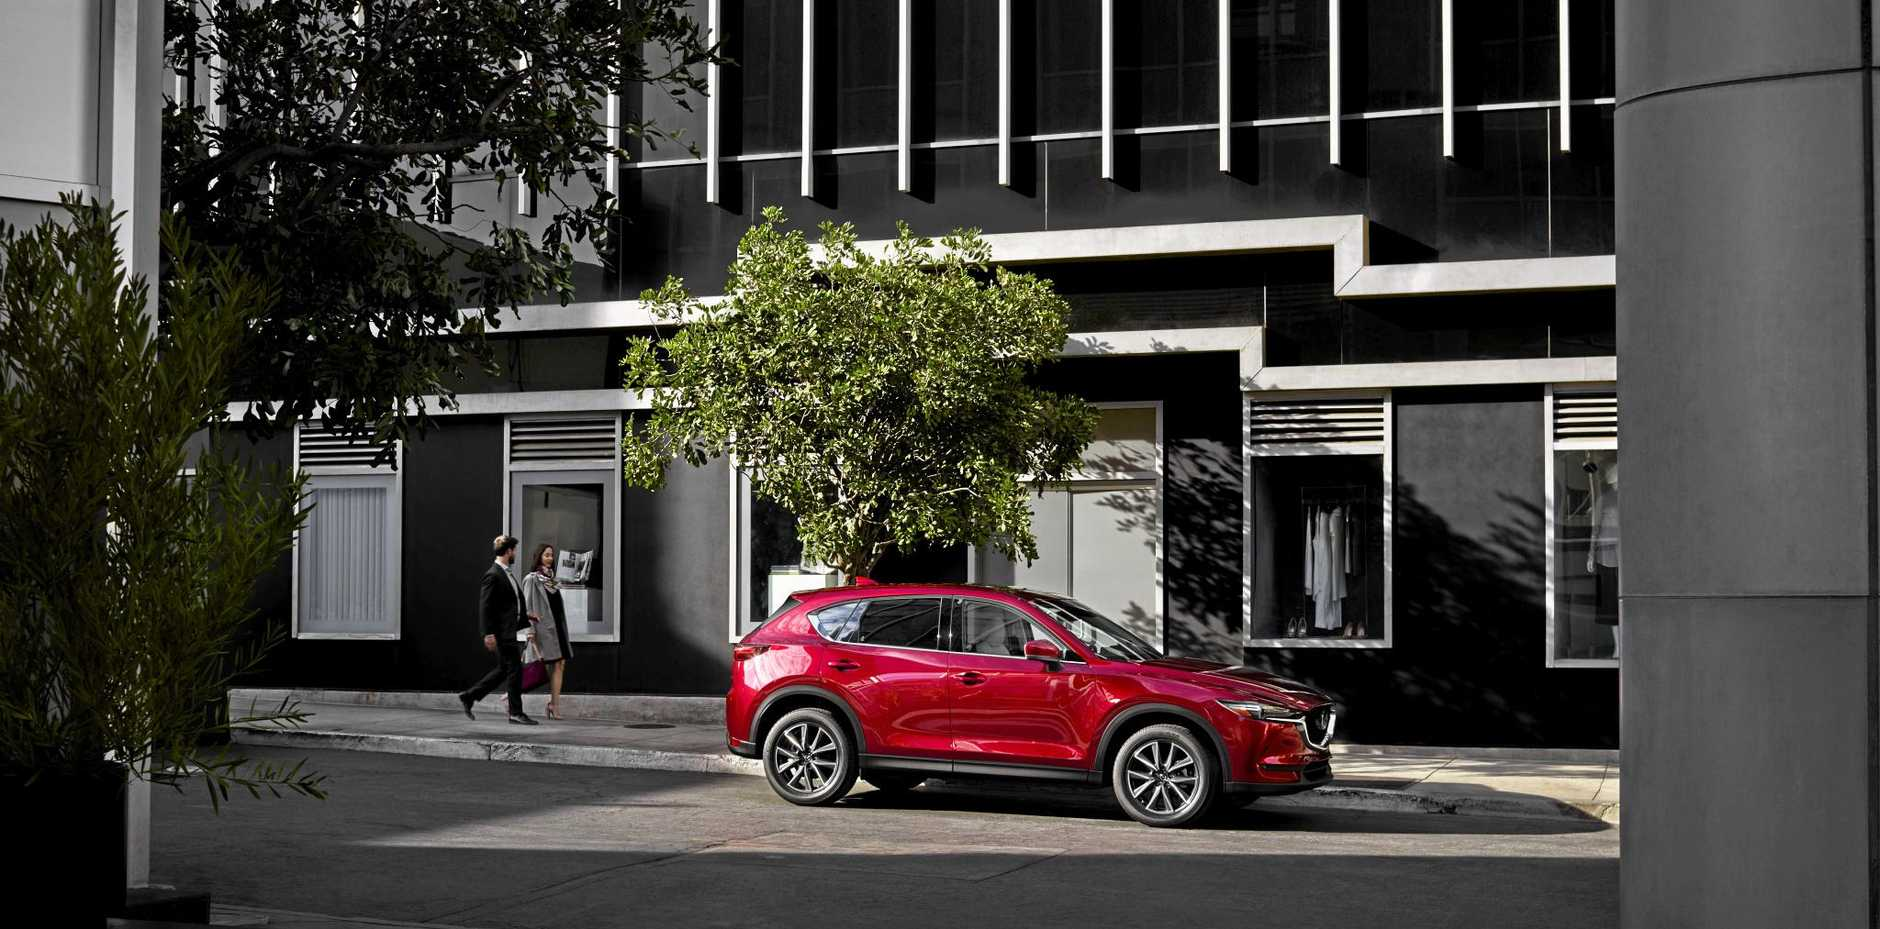 The next generation Mazda CX-5 crossover SUV will arrive in Australia during the first half of 2017.